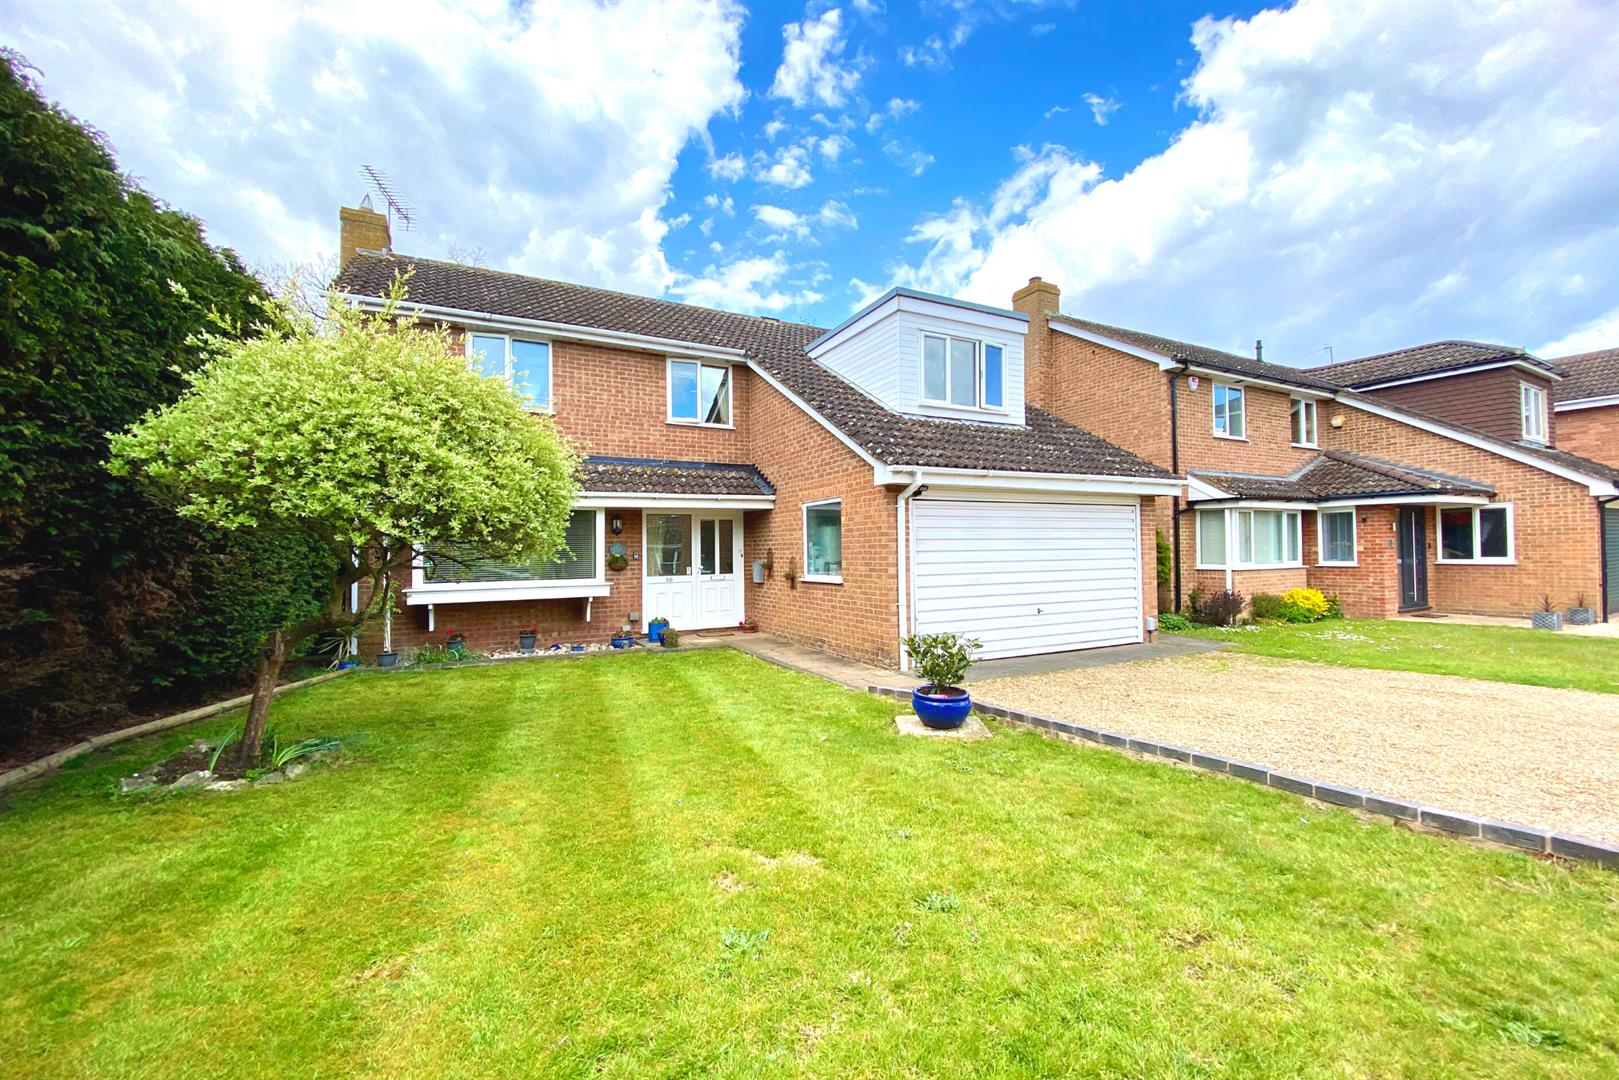 4 bed detached for sale in Winnersh  - Property Image 22